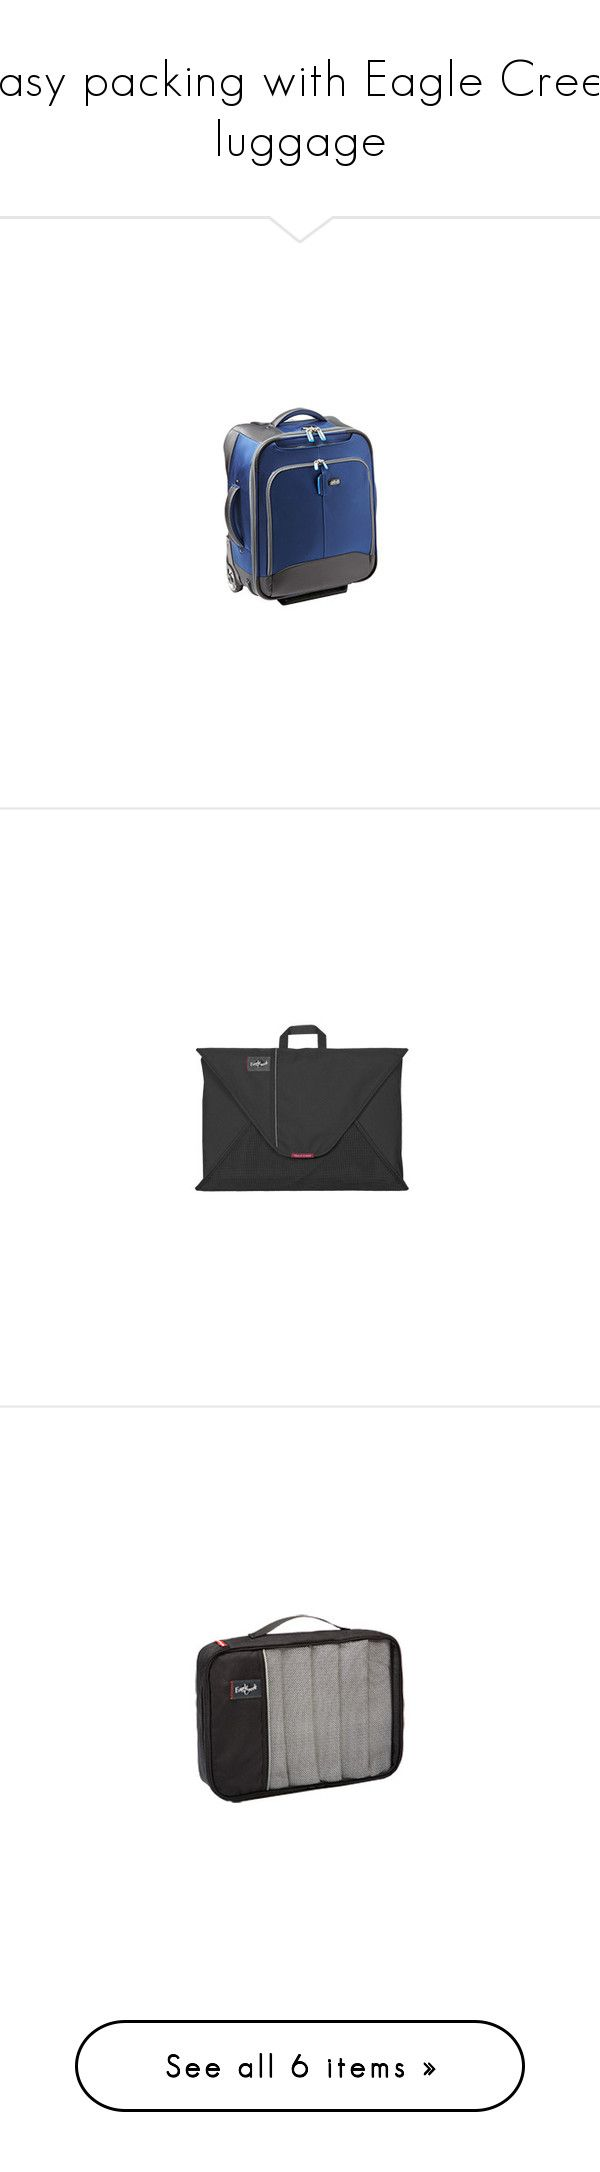 """Easy packing with Eagle Creek luggage"" by missioncloset ❤ liked on Polyvore featuring bags, luggage, home, home decor, eagle creek, black home decor, handbags, tote bags, brown tote handbags and blue handbags"